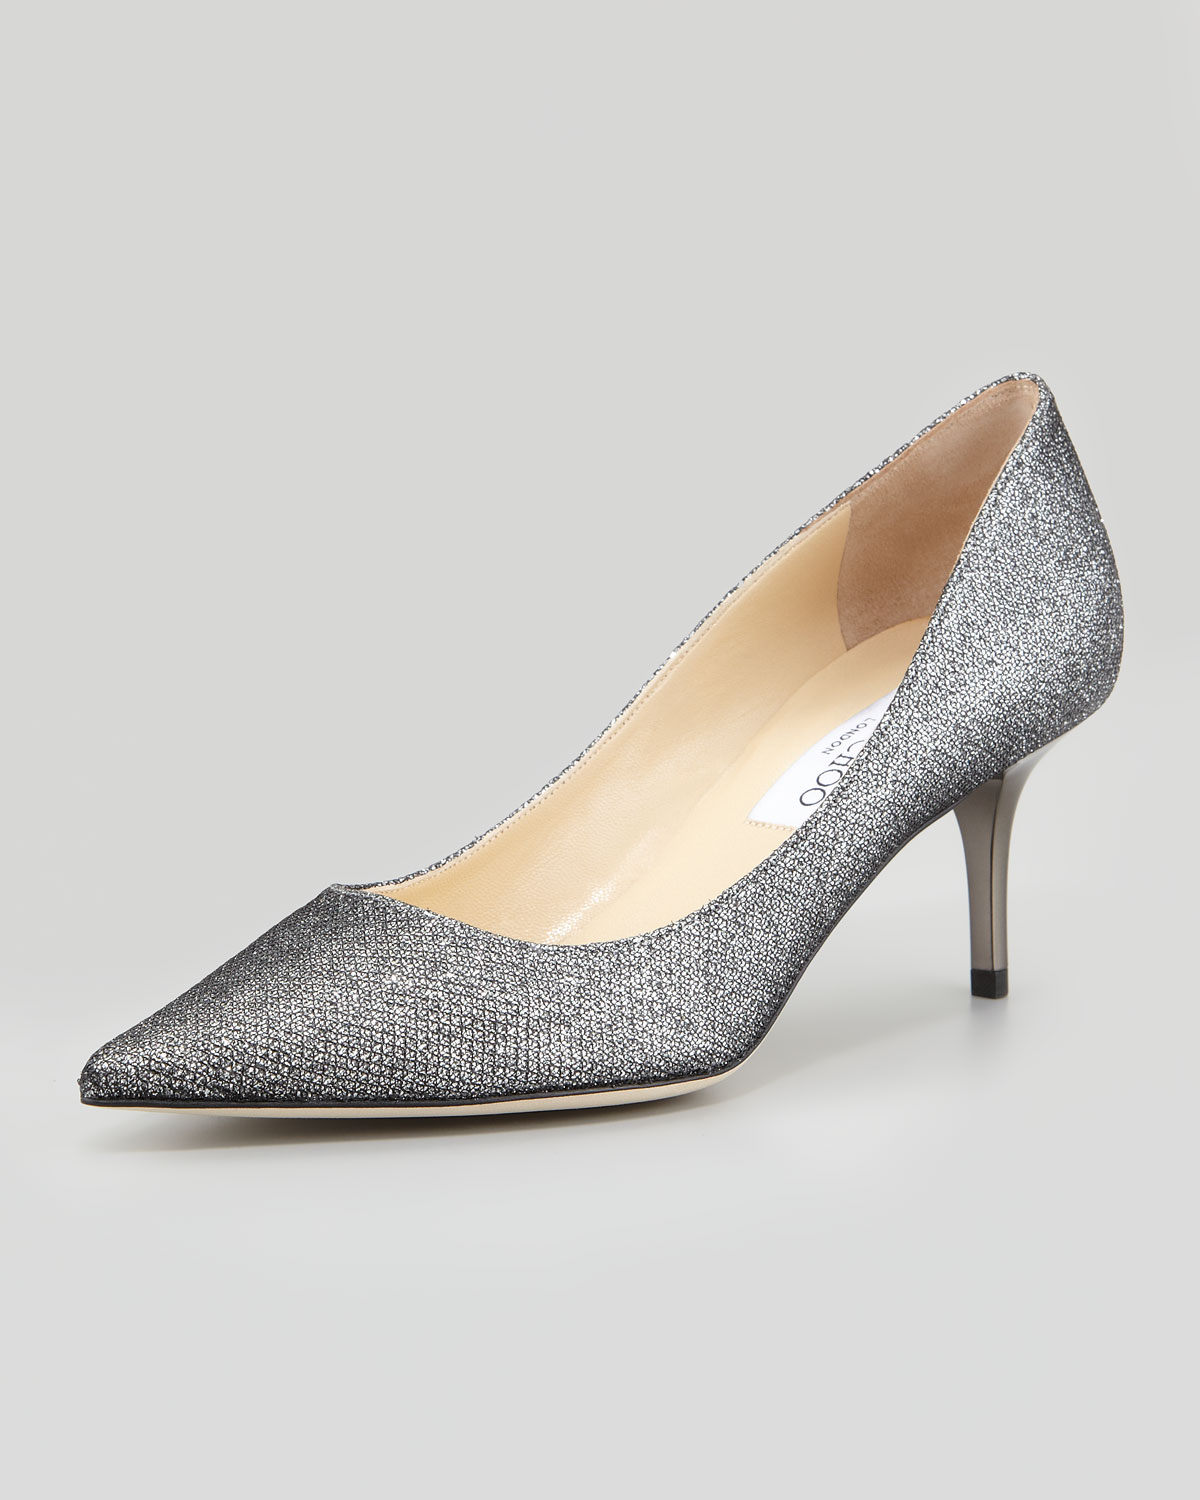 Jimmy Choo Aurora Glitter Pumps clearance enjoy cheap sale find great discount visa payment 0dIB89